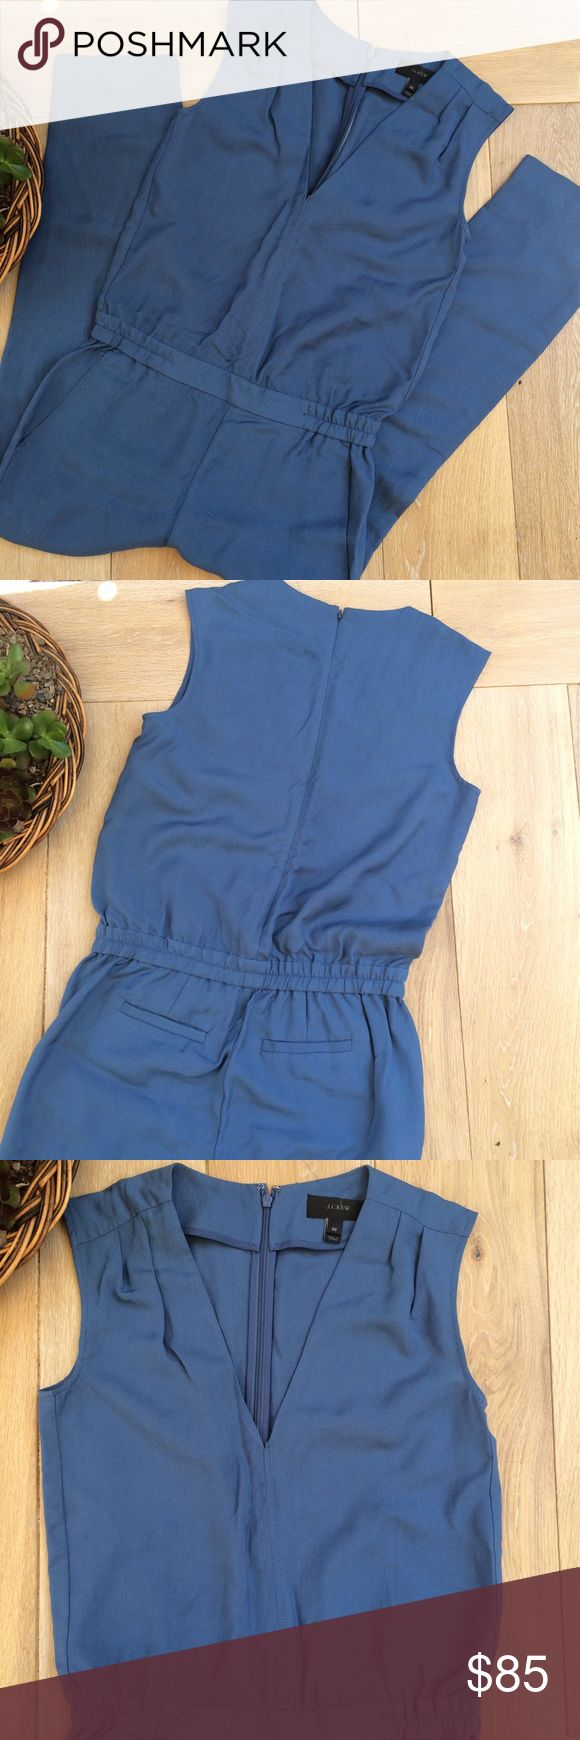 """J. Crew blue Jumpsuit J. Crew blue jumpsuit/romper. 2 front pockets. Inseam approx. 24"""". Waist 15"""" across. Shoulder to waist approx 19"""". Deep V. J. Crew Pants Jumpsuits & Rompers"""